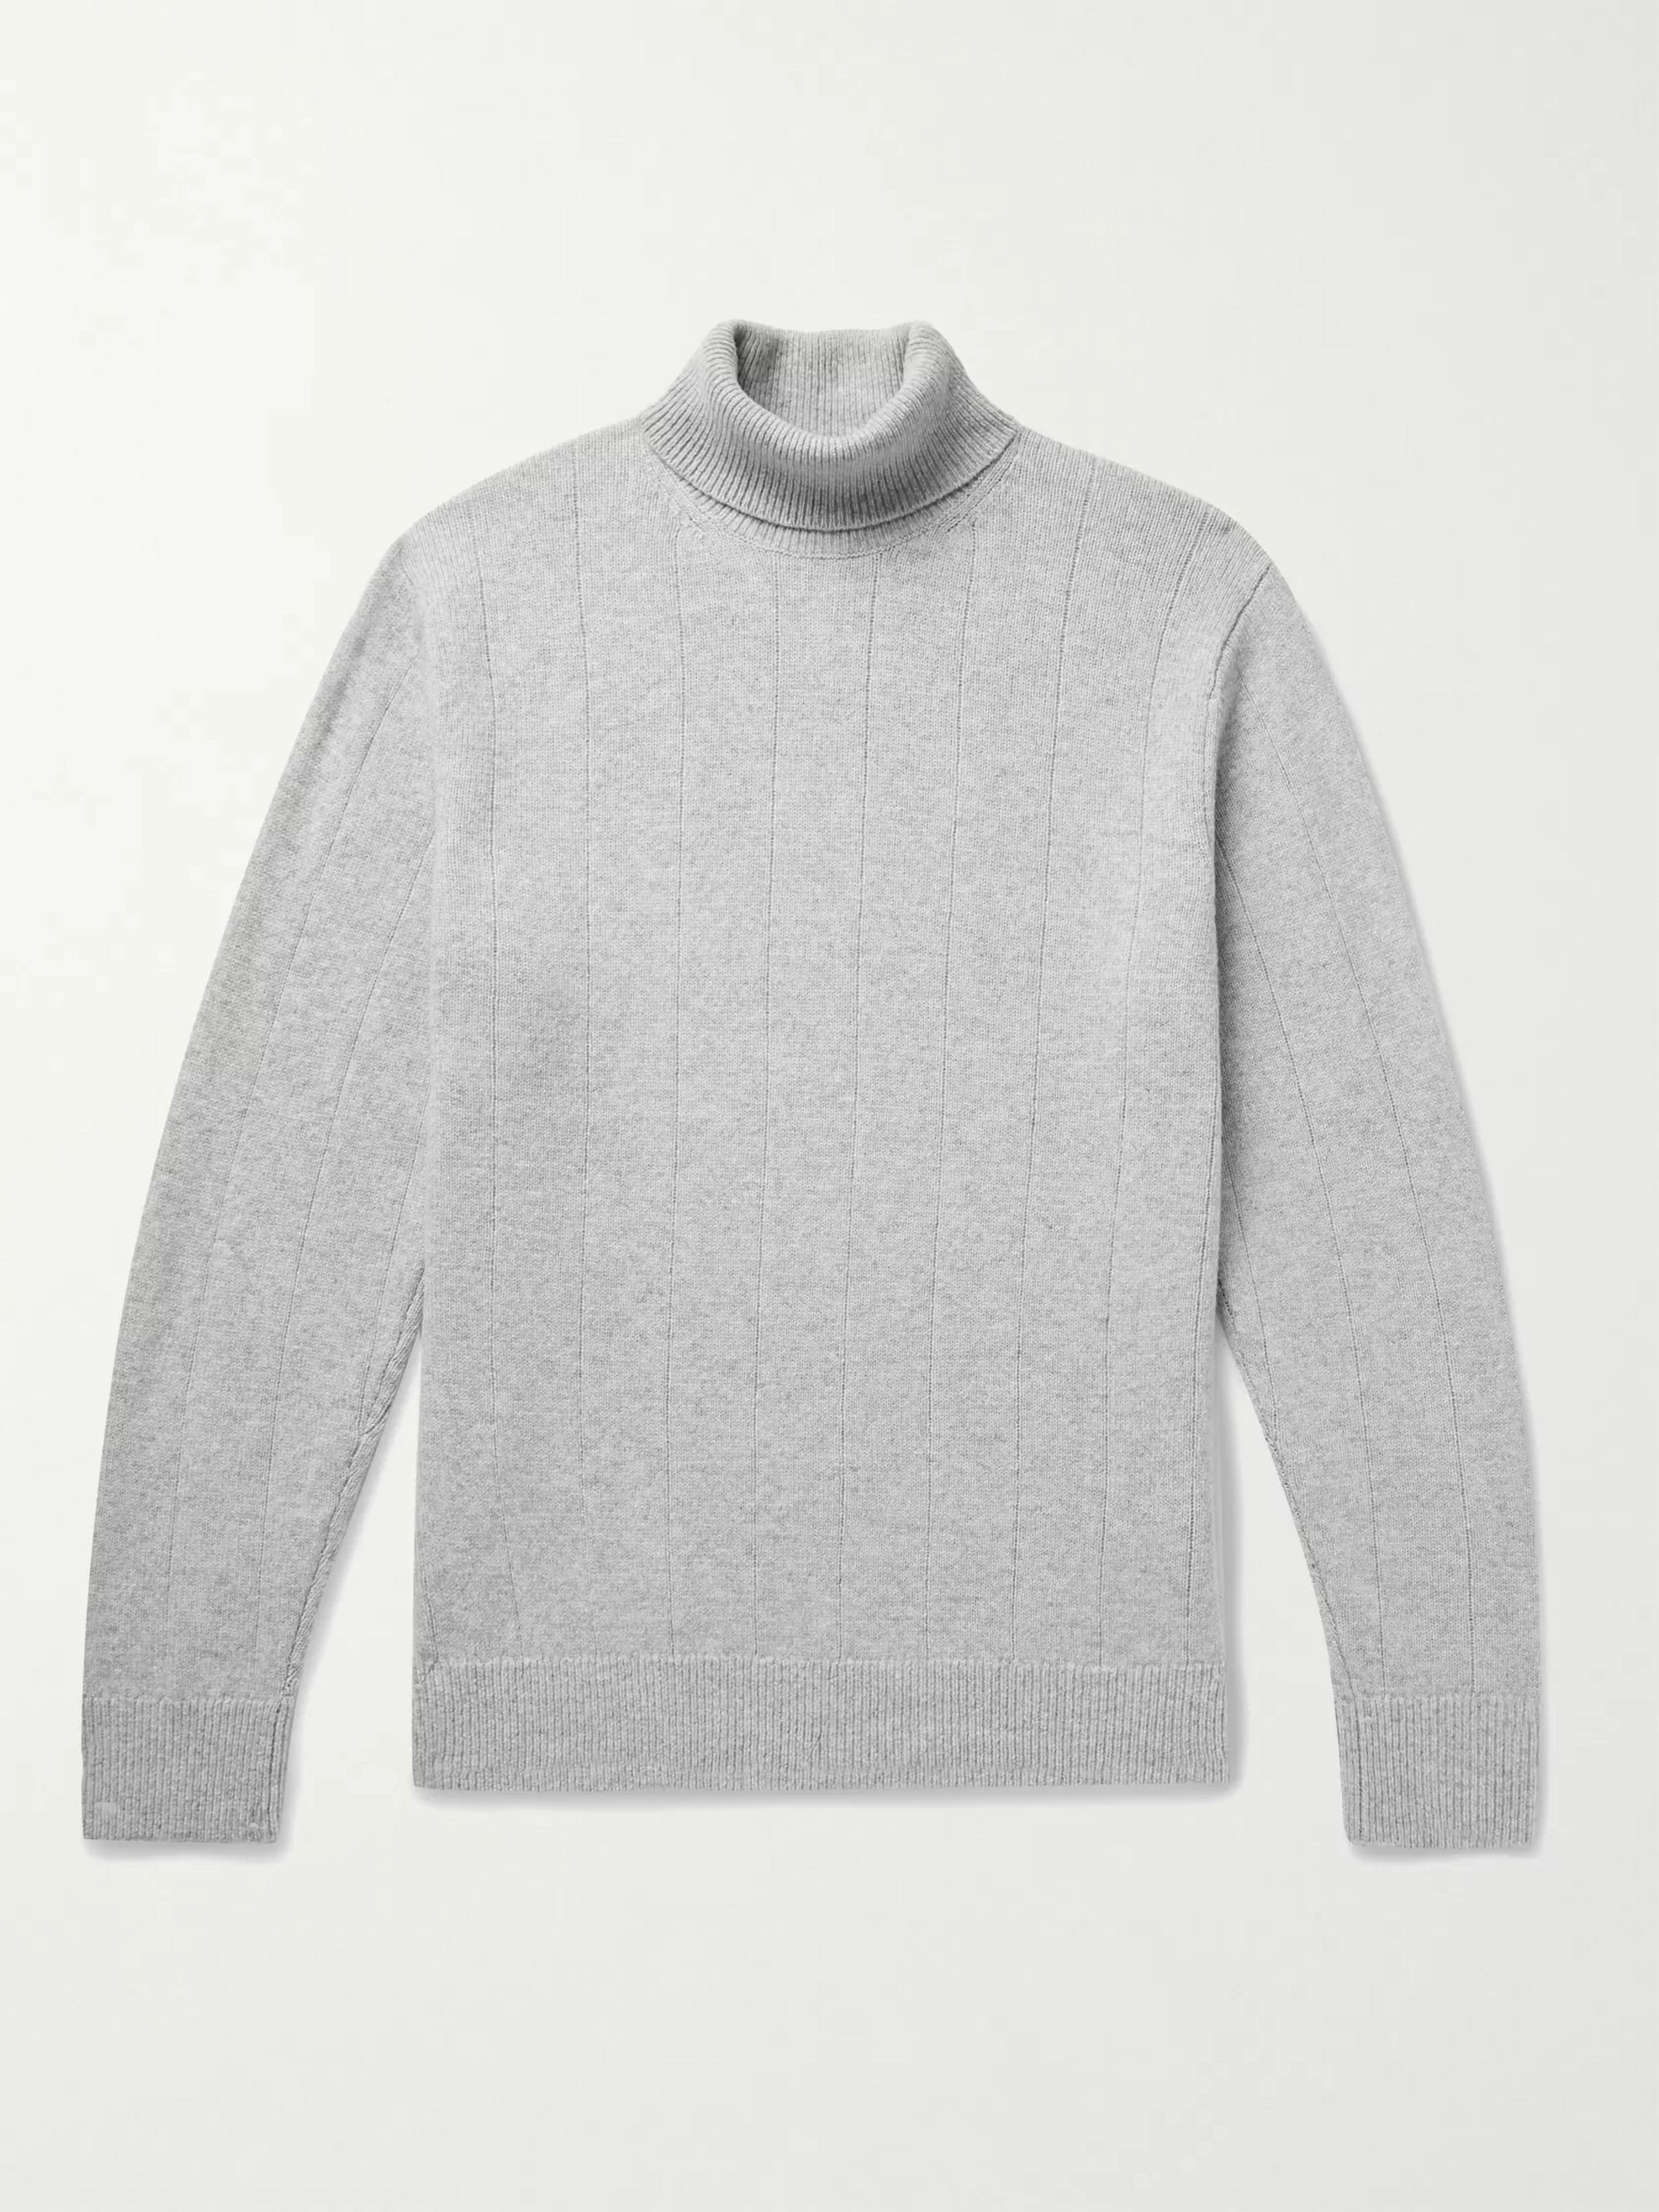 CLUB MONACO Ribbed Melange Wool and Cashmere-Blend Rollneck Sweater